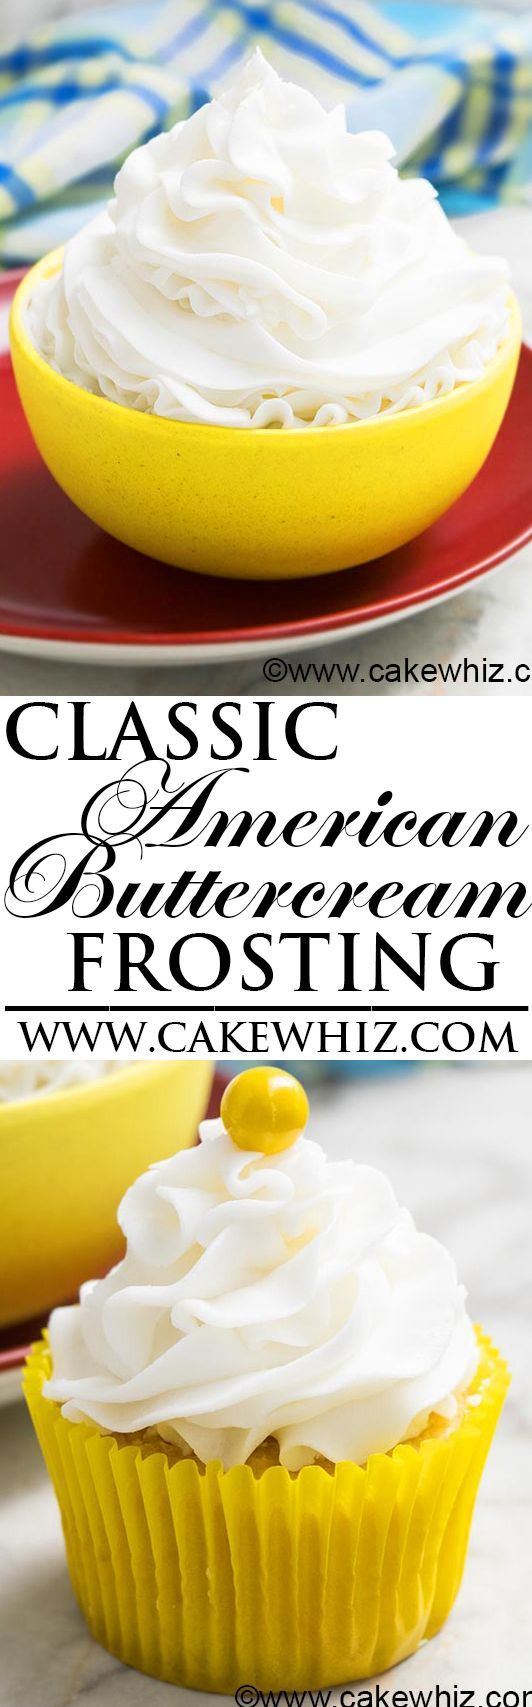 This easy classic AMERICAN BUTTERCREAM FROSTING is made with just 4 ingredients. It's firm, holds its shape and is great for piping and cake decorating. Lots of tips included on how to make and use this perfect white buttercream icing recipe. From cakewhiz.com